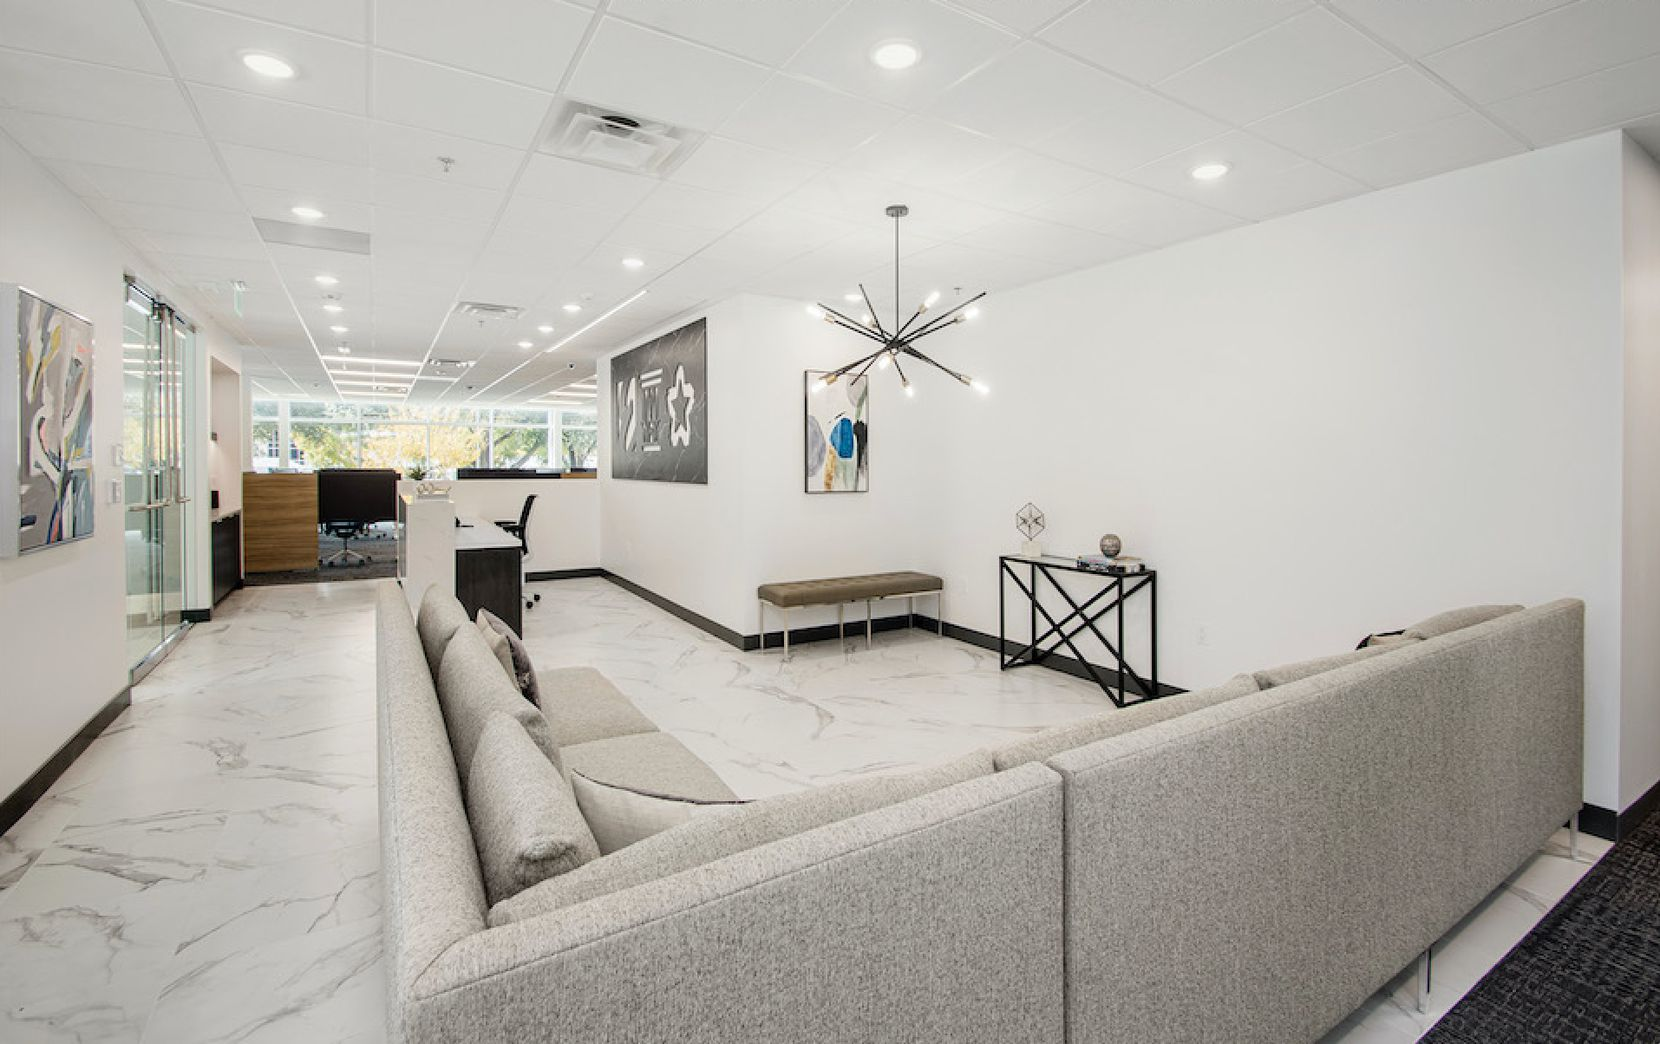 """Ebby Halliday's new headquarters has 17,000 square feet of space, about half of what the company previously occupied. The choice of a smaller office was deliberate and a response to """"today's modern work environment and needs,"""" the company says."""